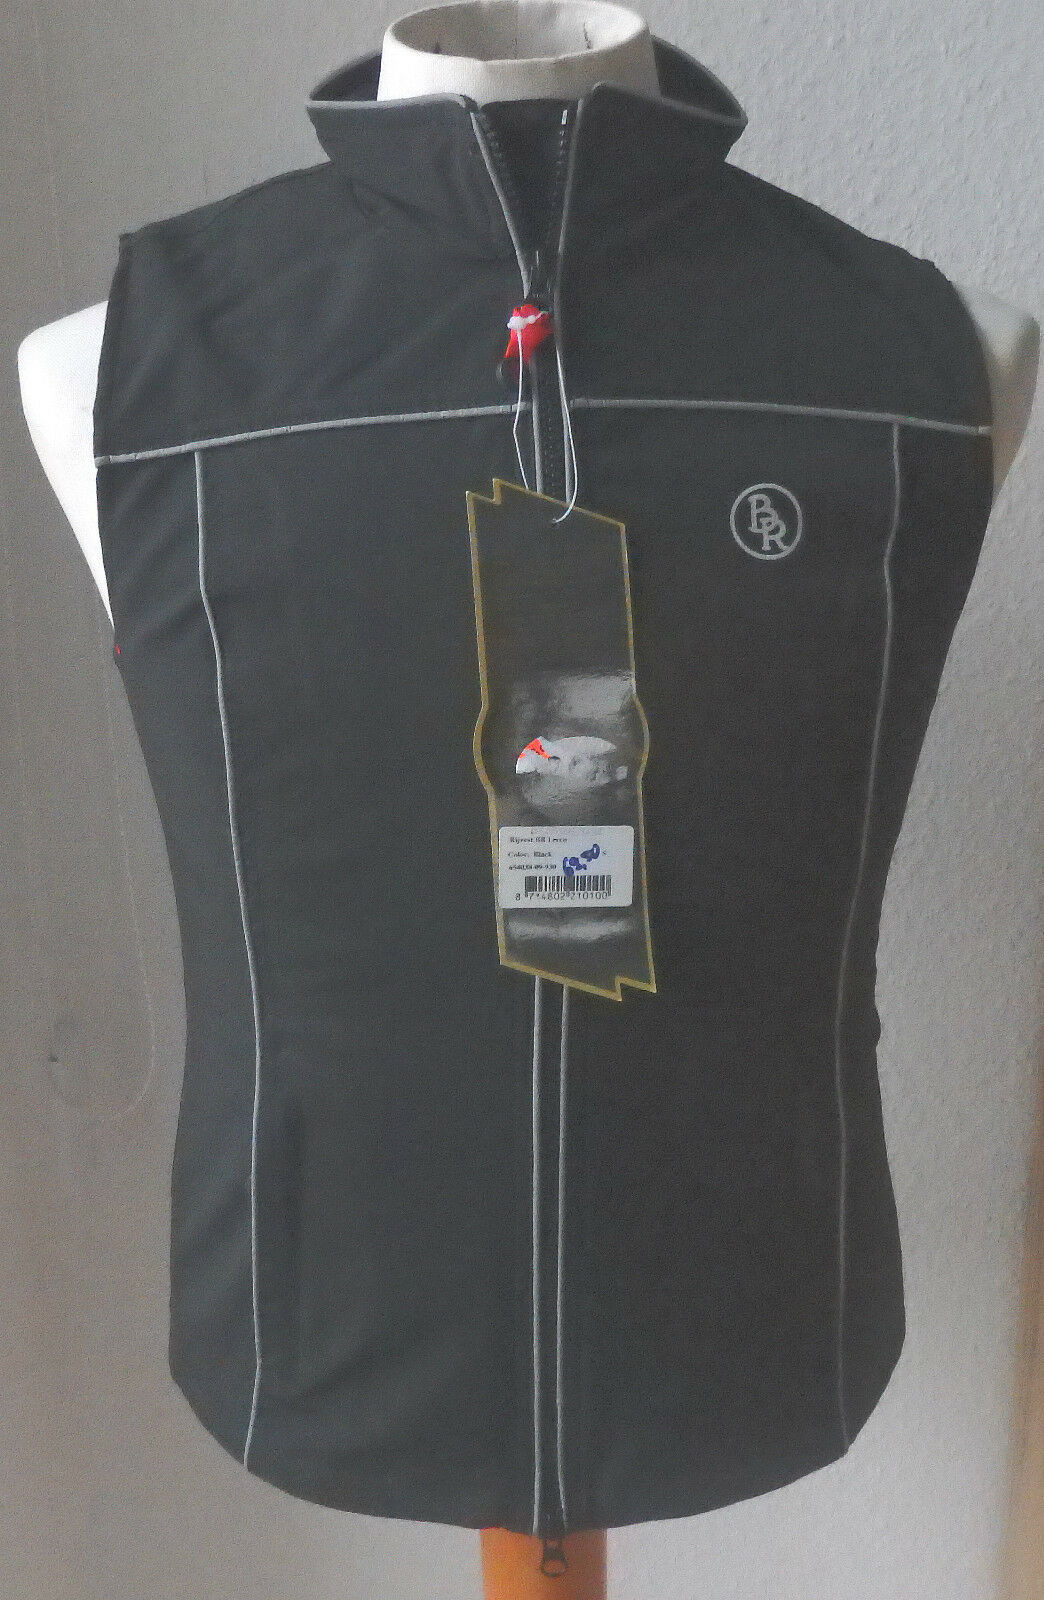 BR Softshell Reitweste, black, Gr. S, Modell Lecco